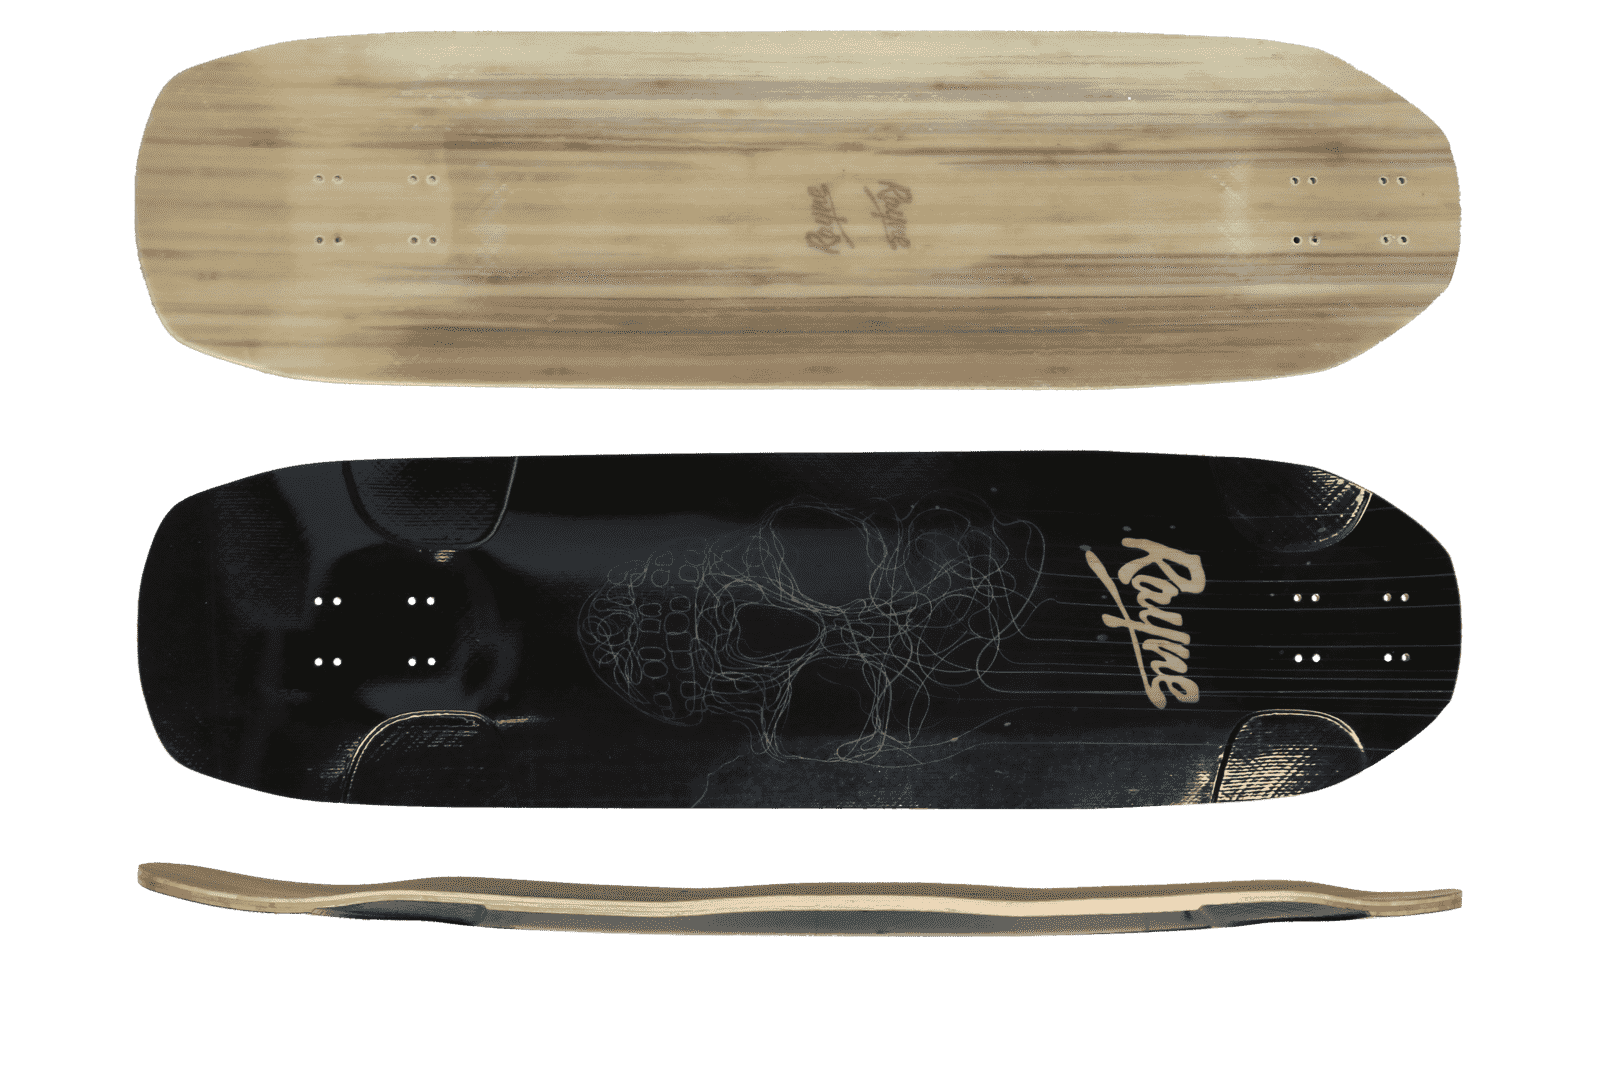 Custom Darkside Skull 36 Rayne Board | Ghost +$0 00 Grip Tape: Clear